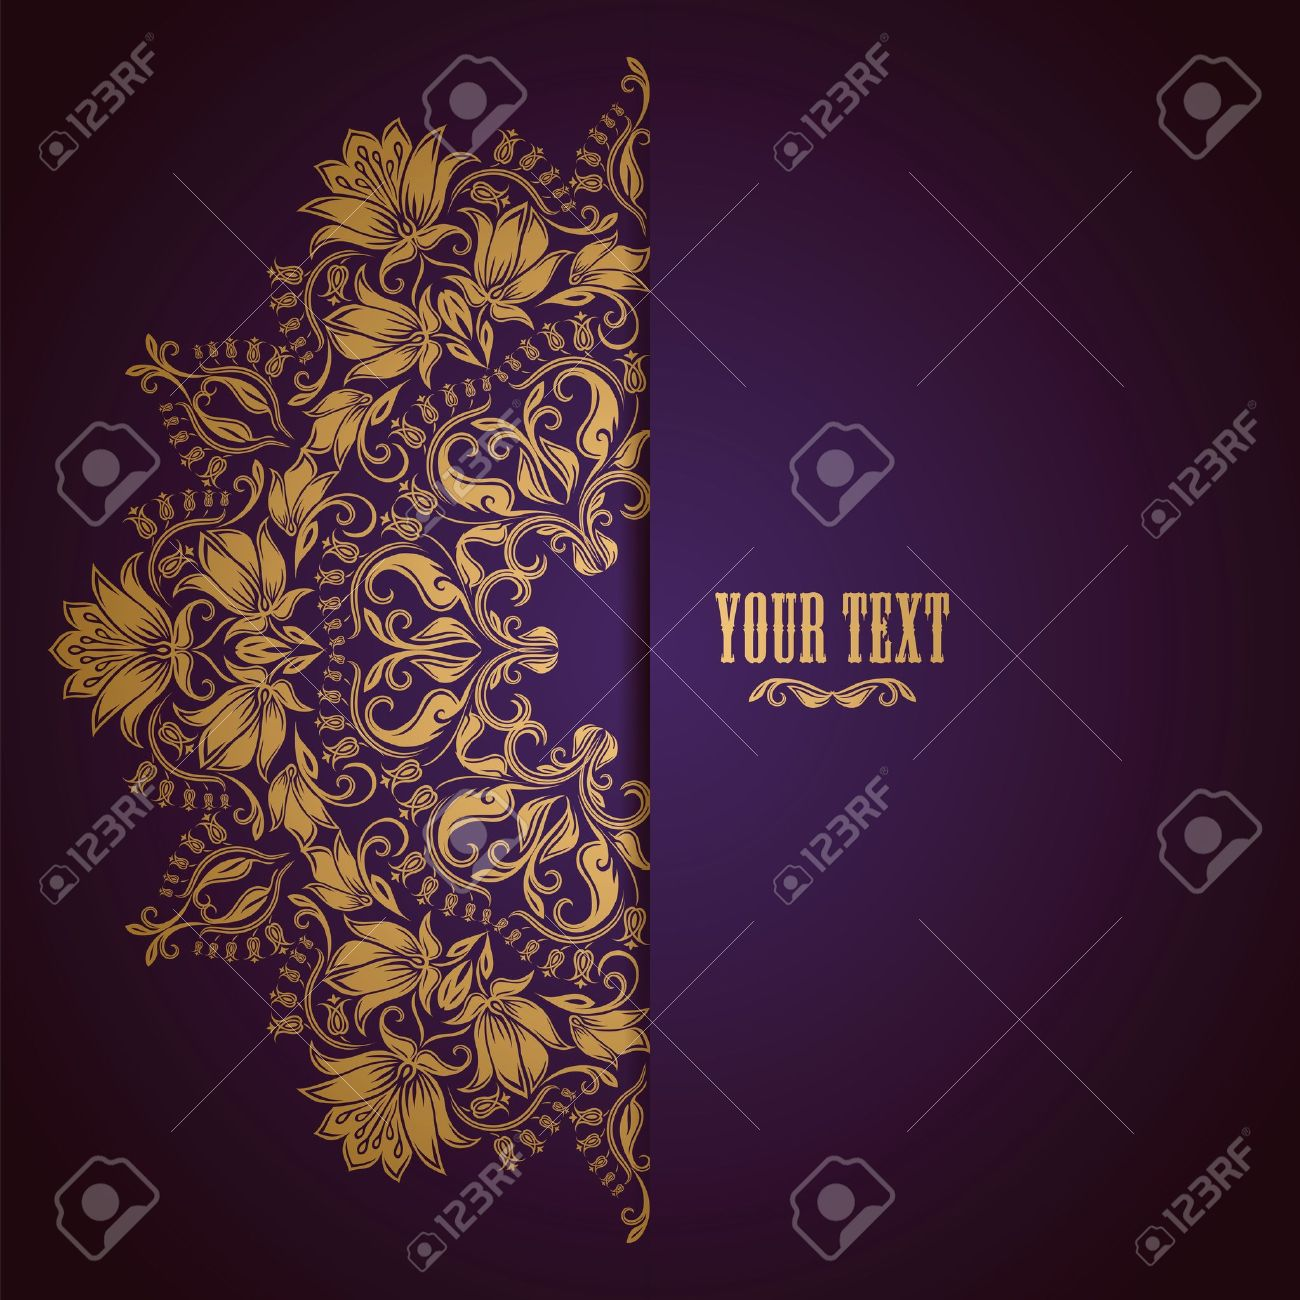 Elegant background with lace ornament and place for text. Floral elements, ornate background. Stock Vector - 17623677